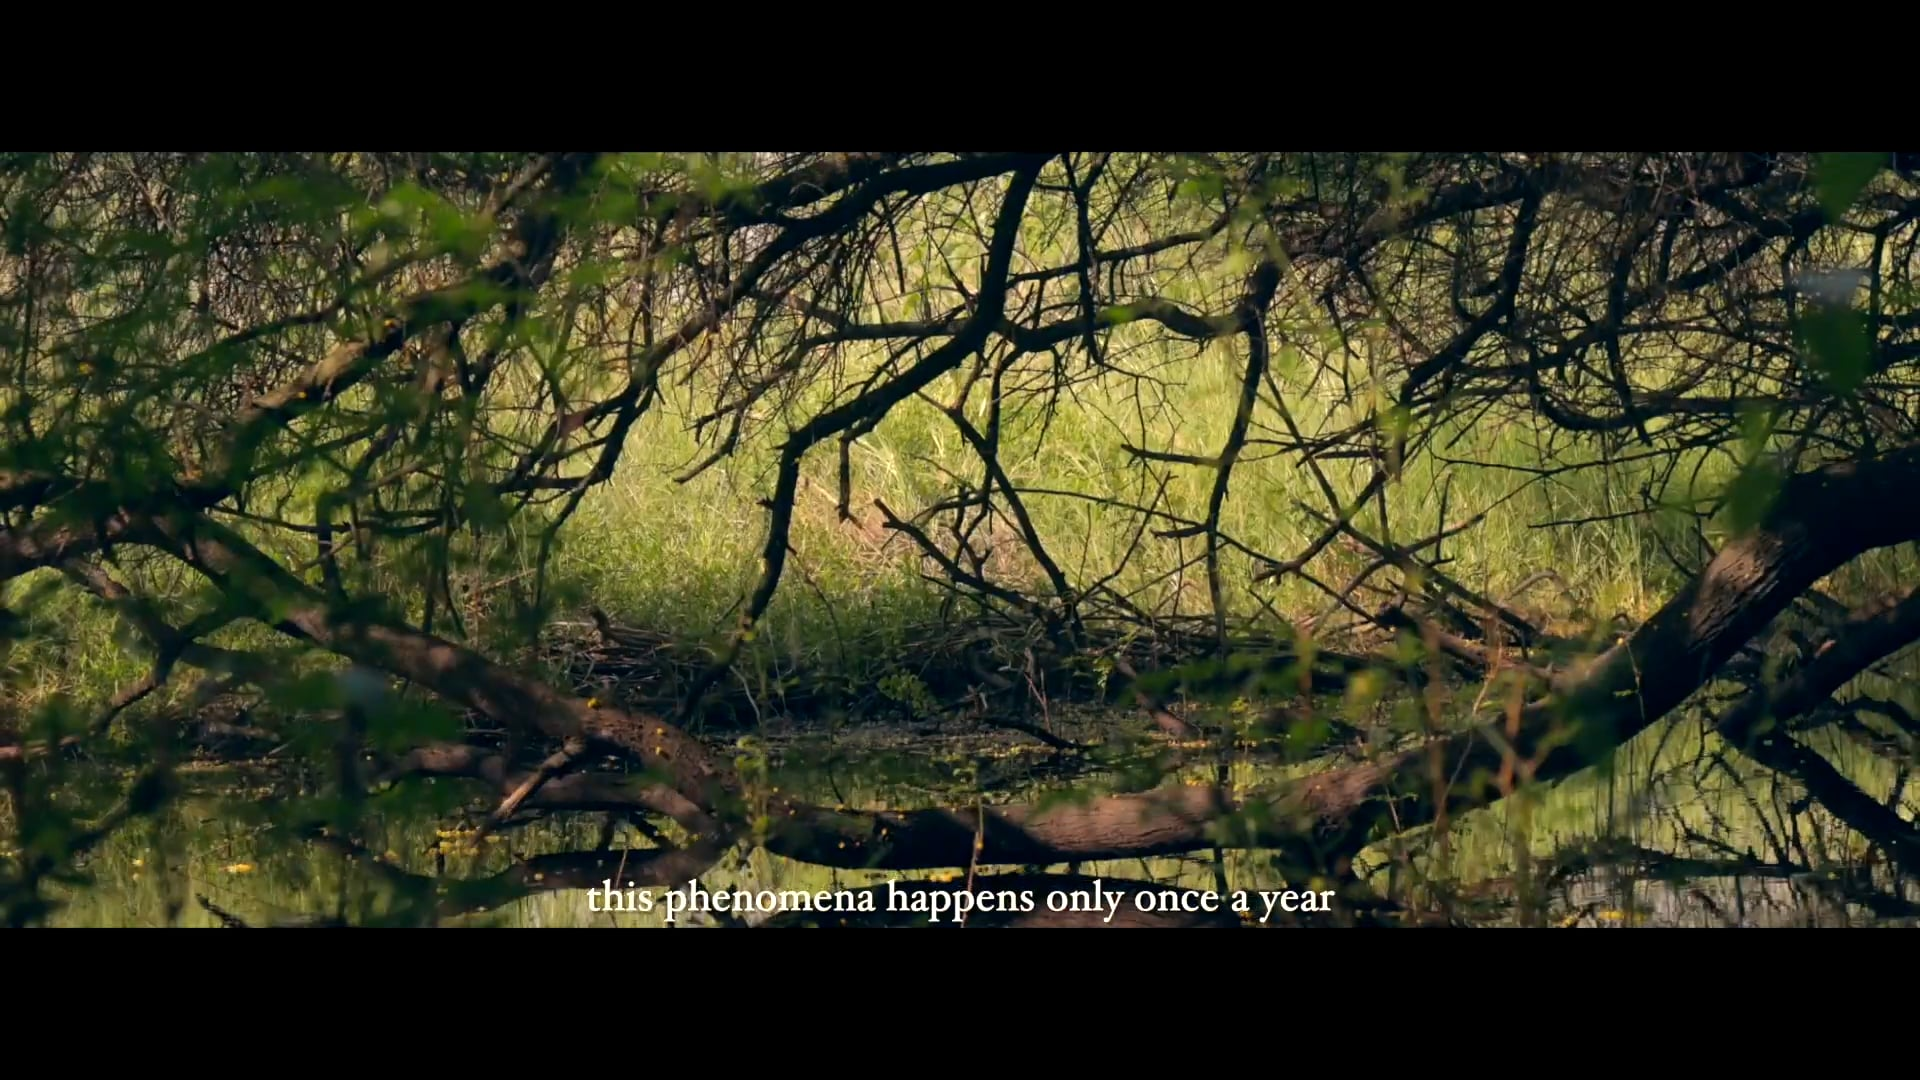 Song of the SoulBirds / Bharatpur Bird Sanctuary